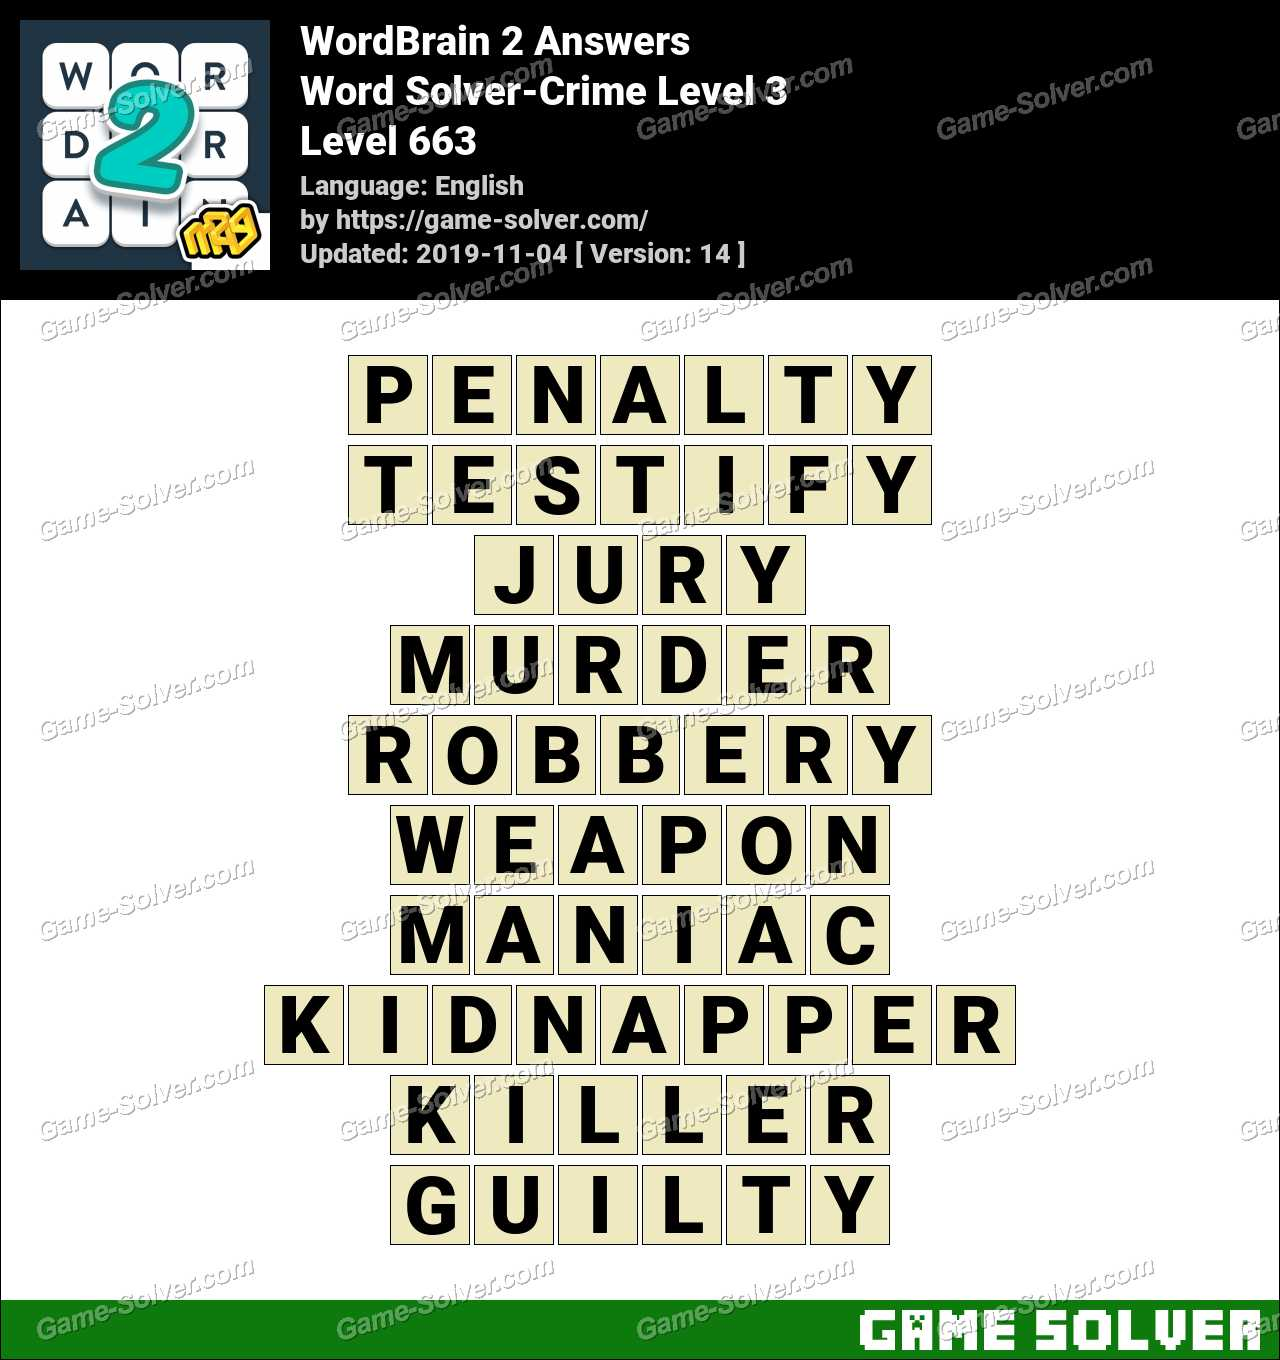 Word Solver Crime Level 3 Answers